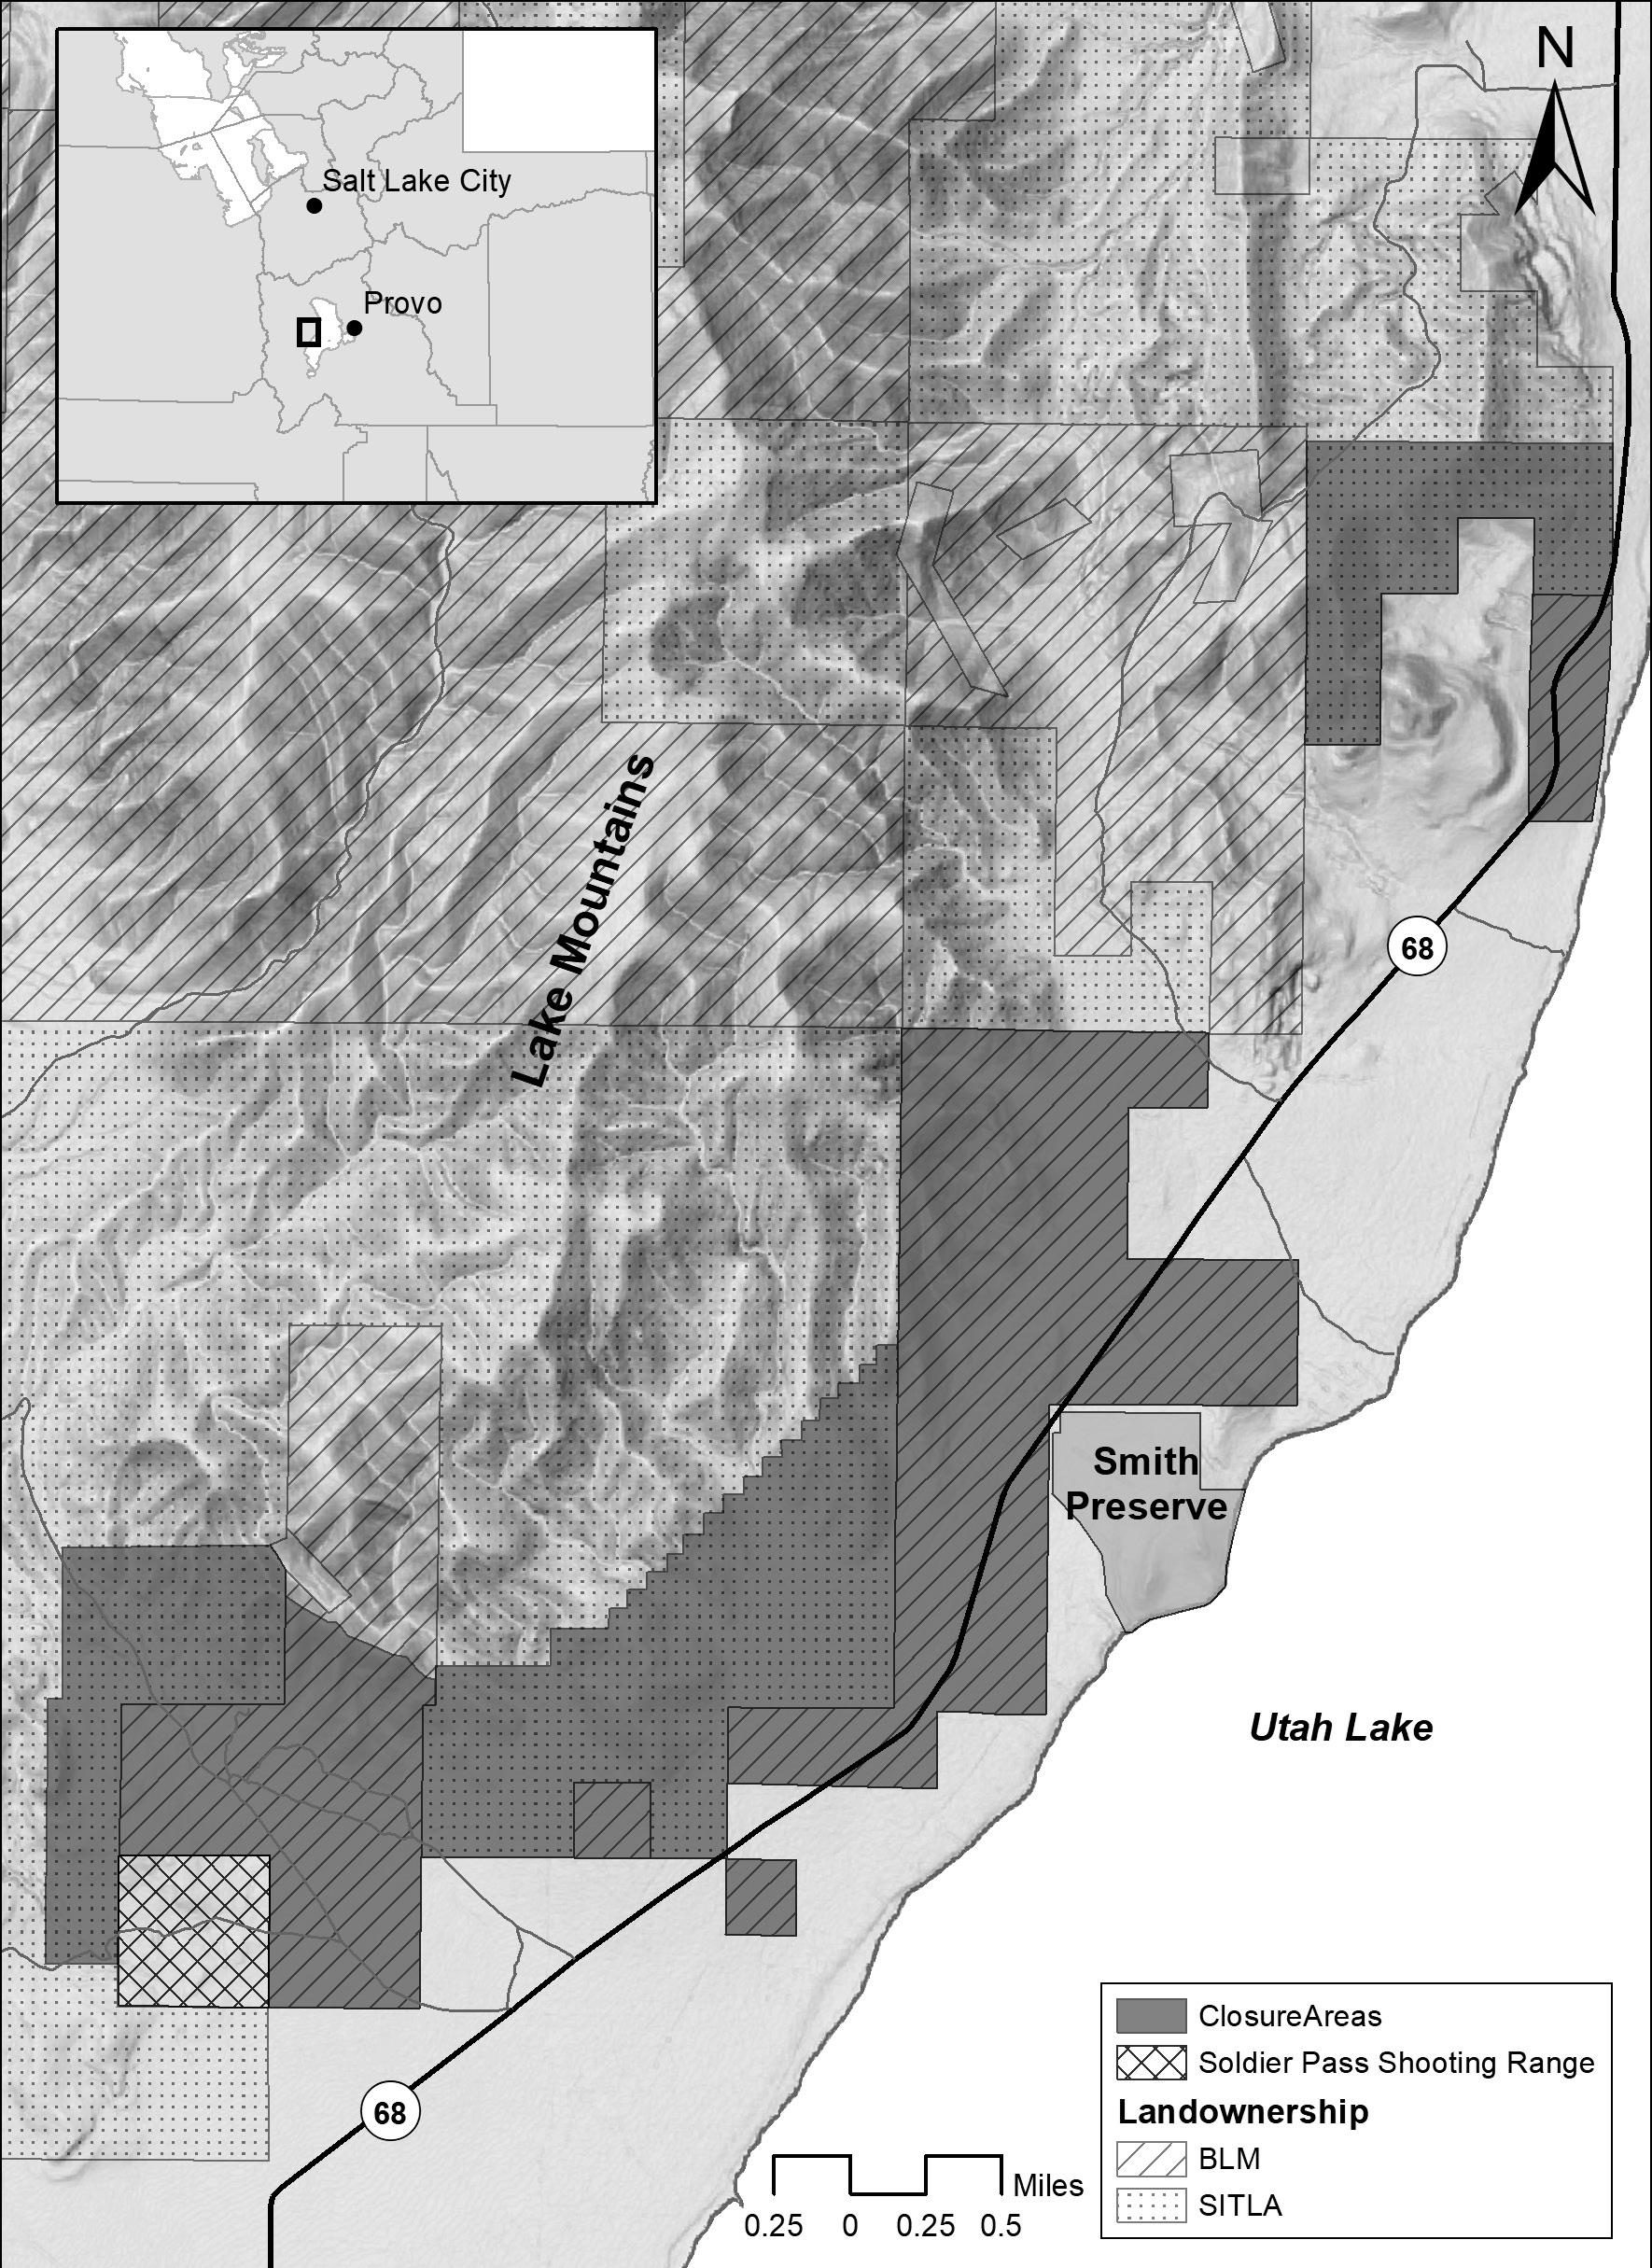 Page 34 of Utah Lake Rock imagery: An Intersection of Public Lands, Recreational Shooting, and Cultural Resources